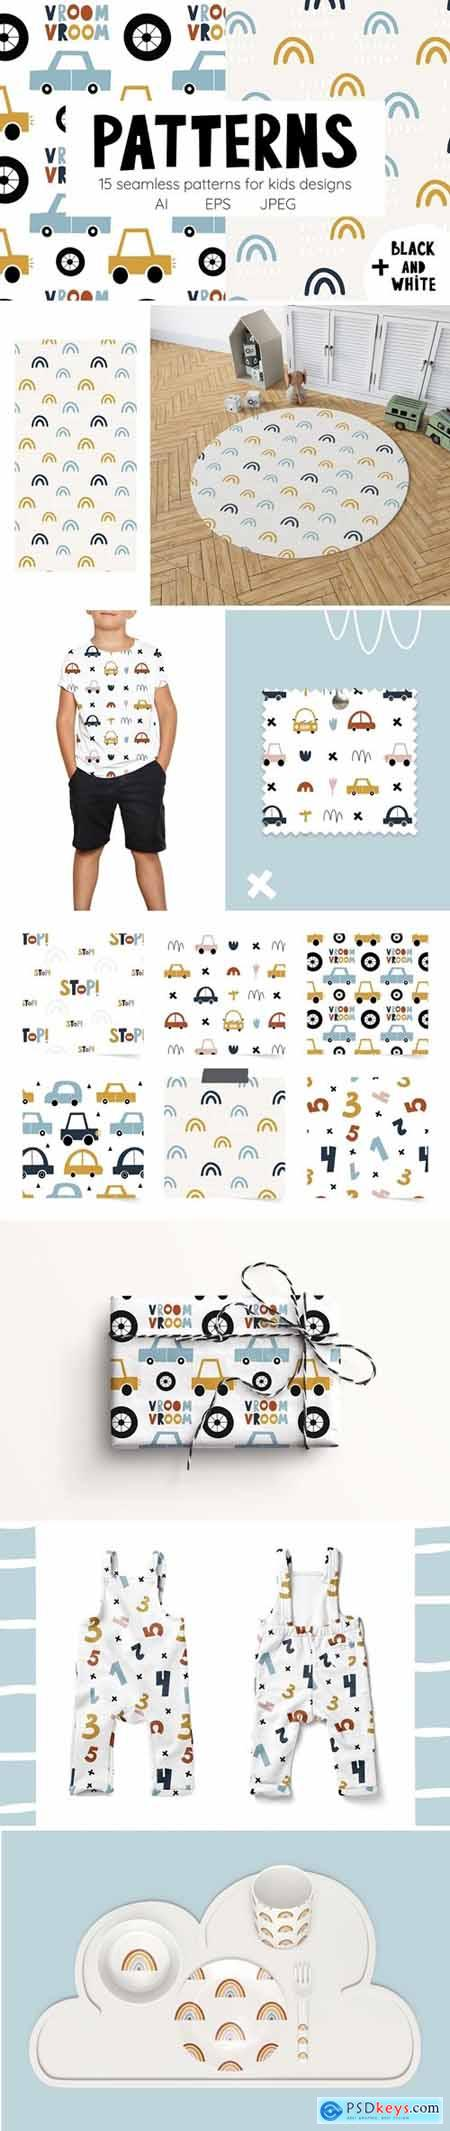 Сute cars Patterns collection 4634351